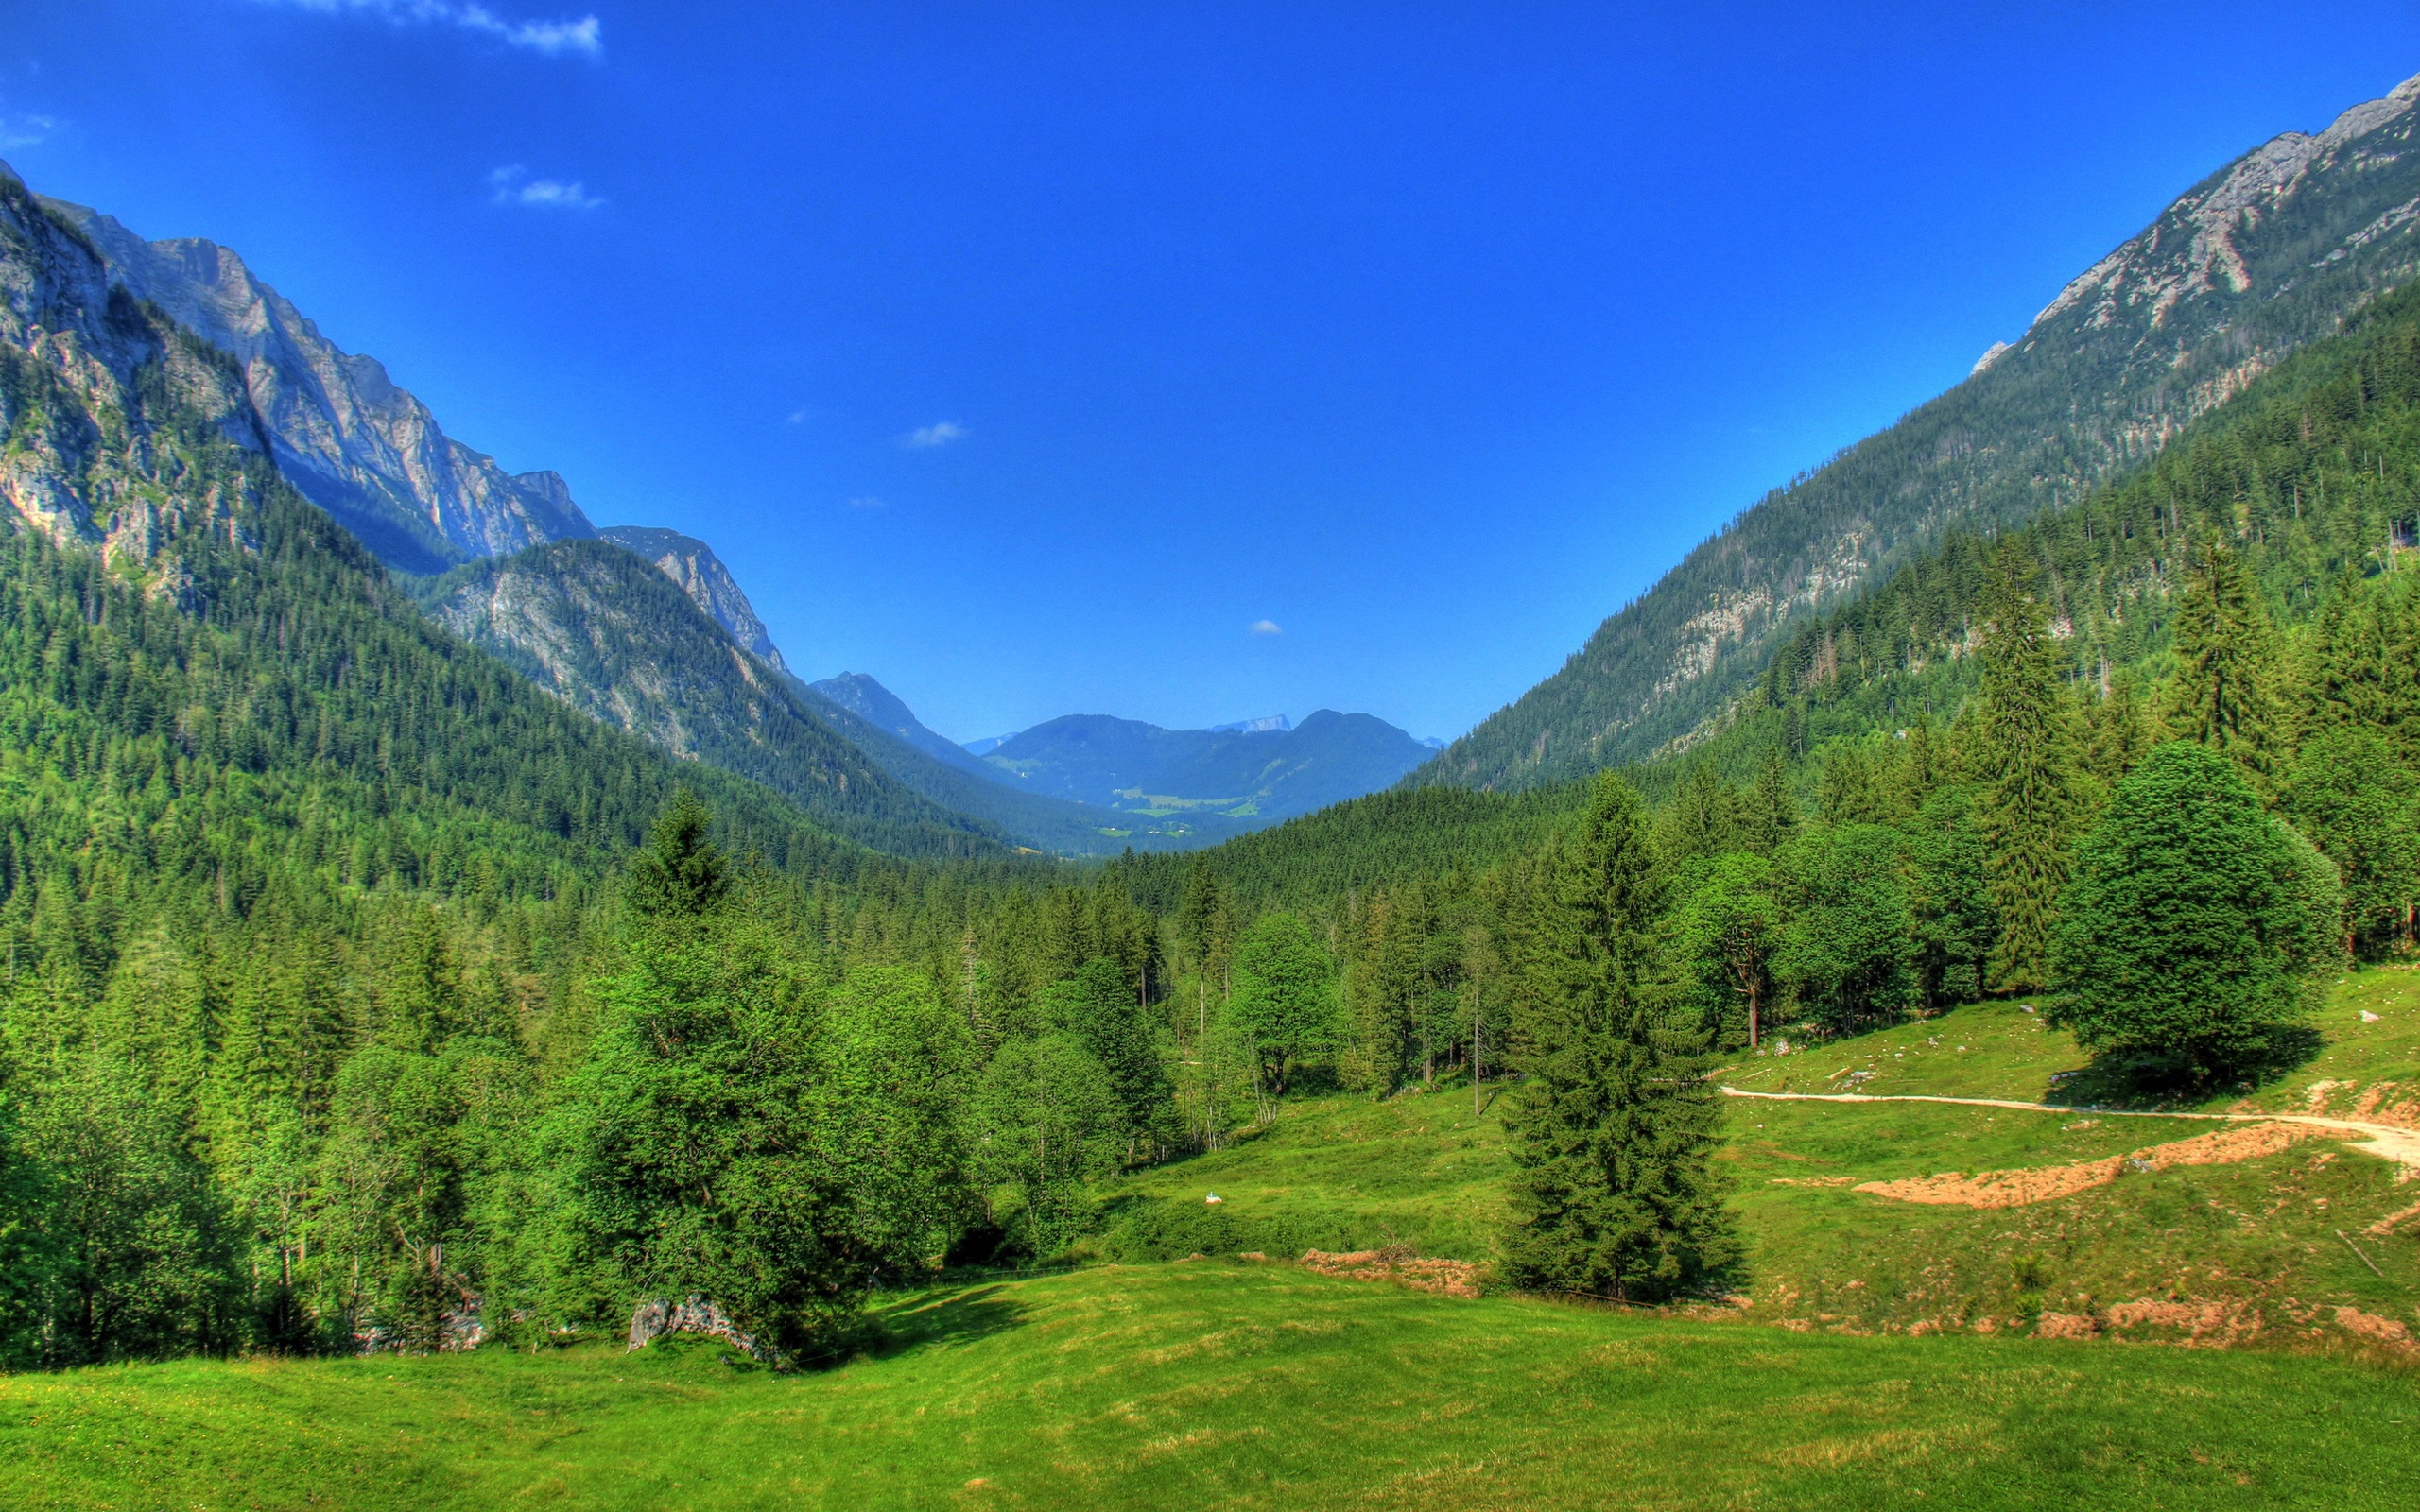 Cute Love Wallpapers Hd Full Size Germany Bavaria Nature Landscape Mountains Forest